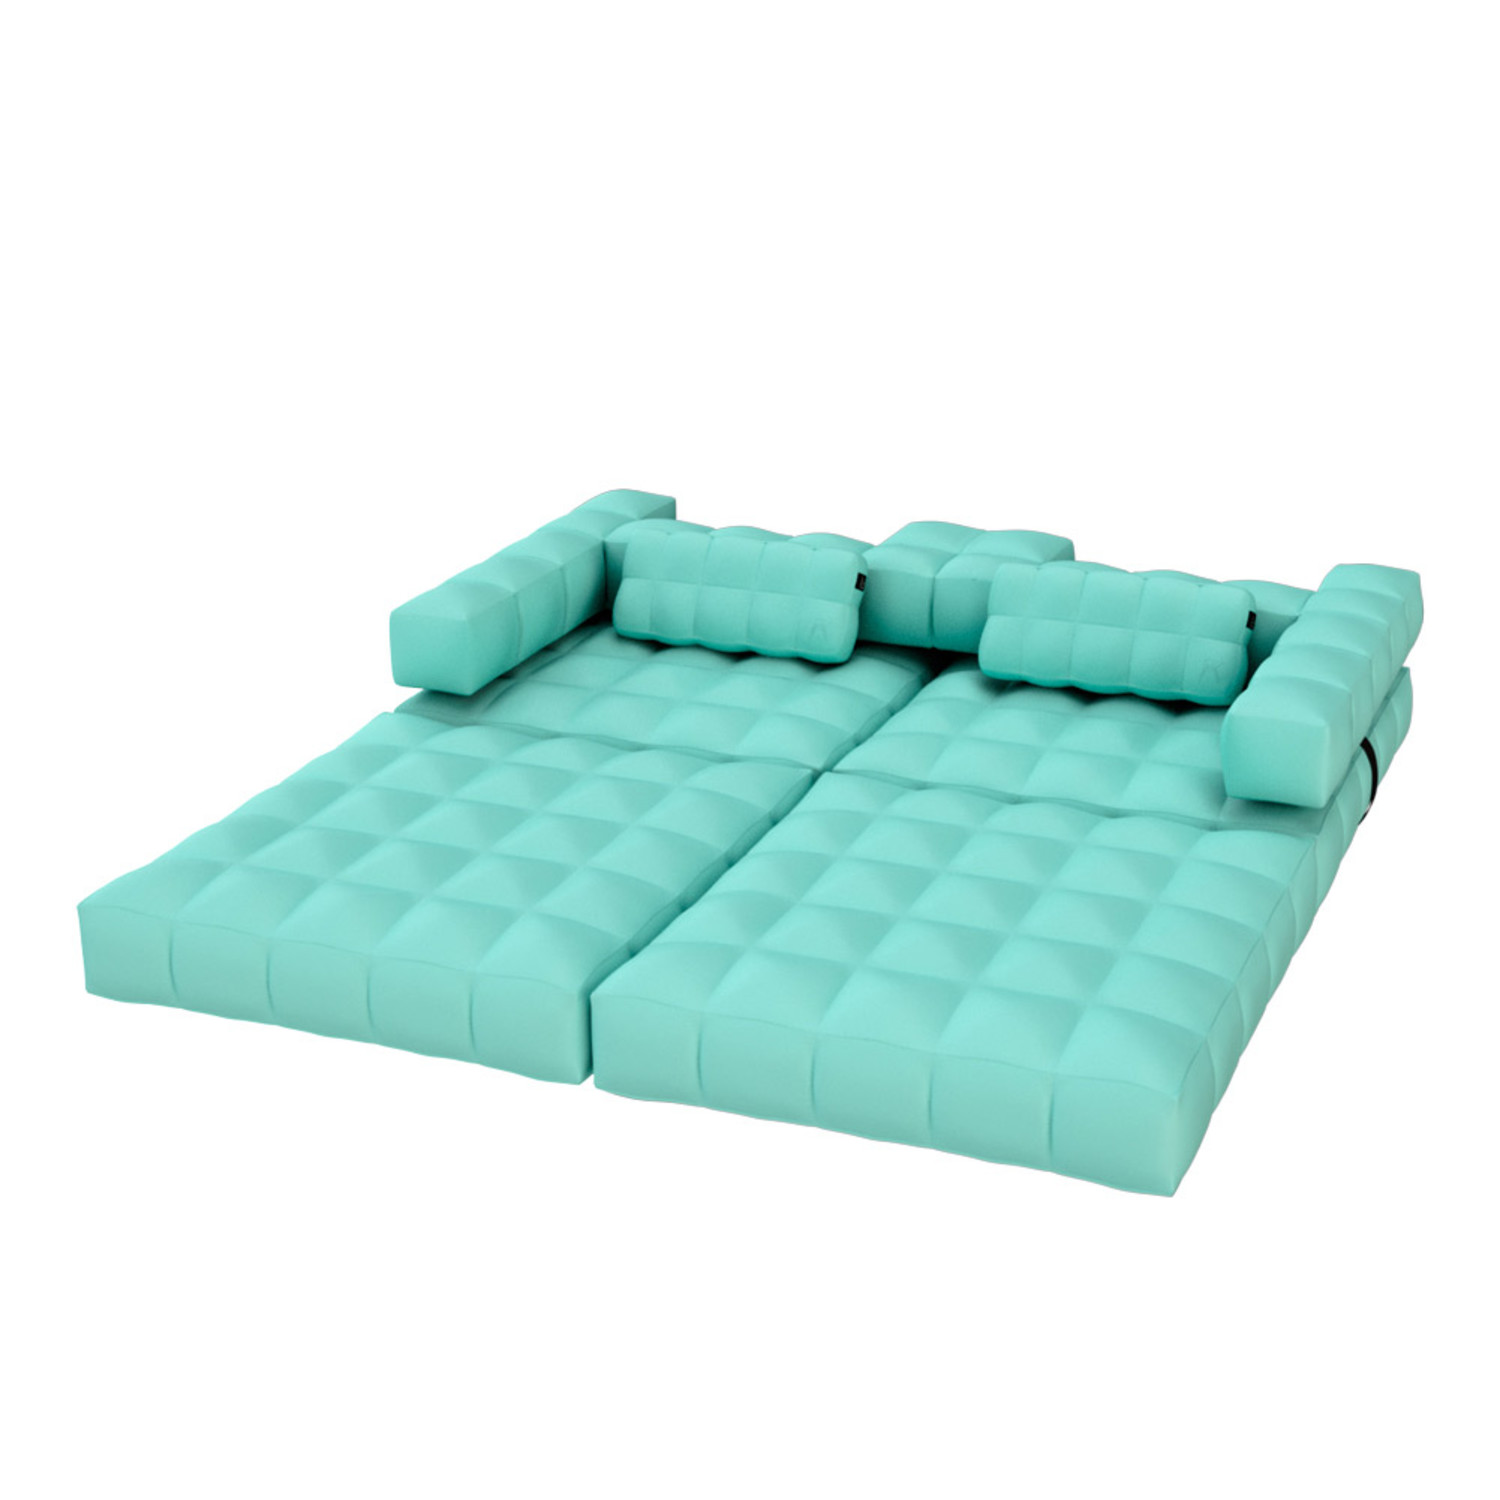 Inflatable Sofa Bed Flipkart: Air Sofa Set Images